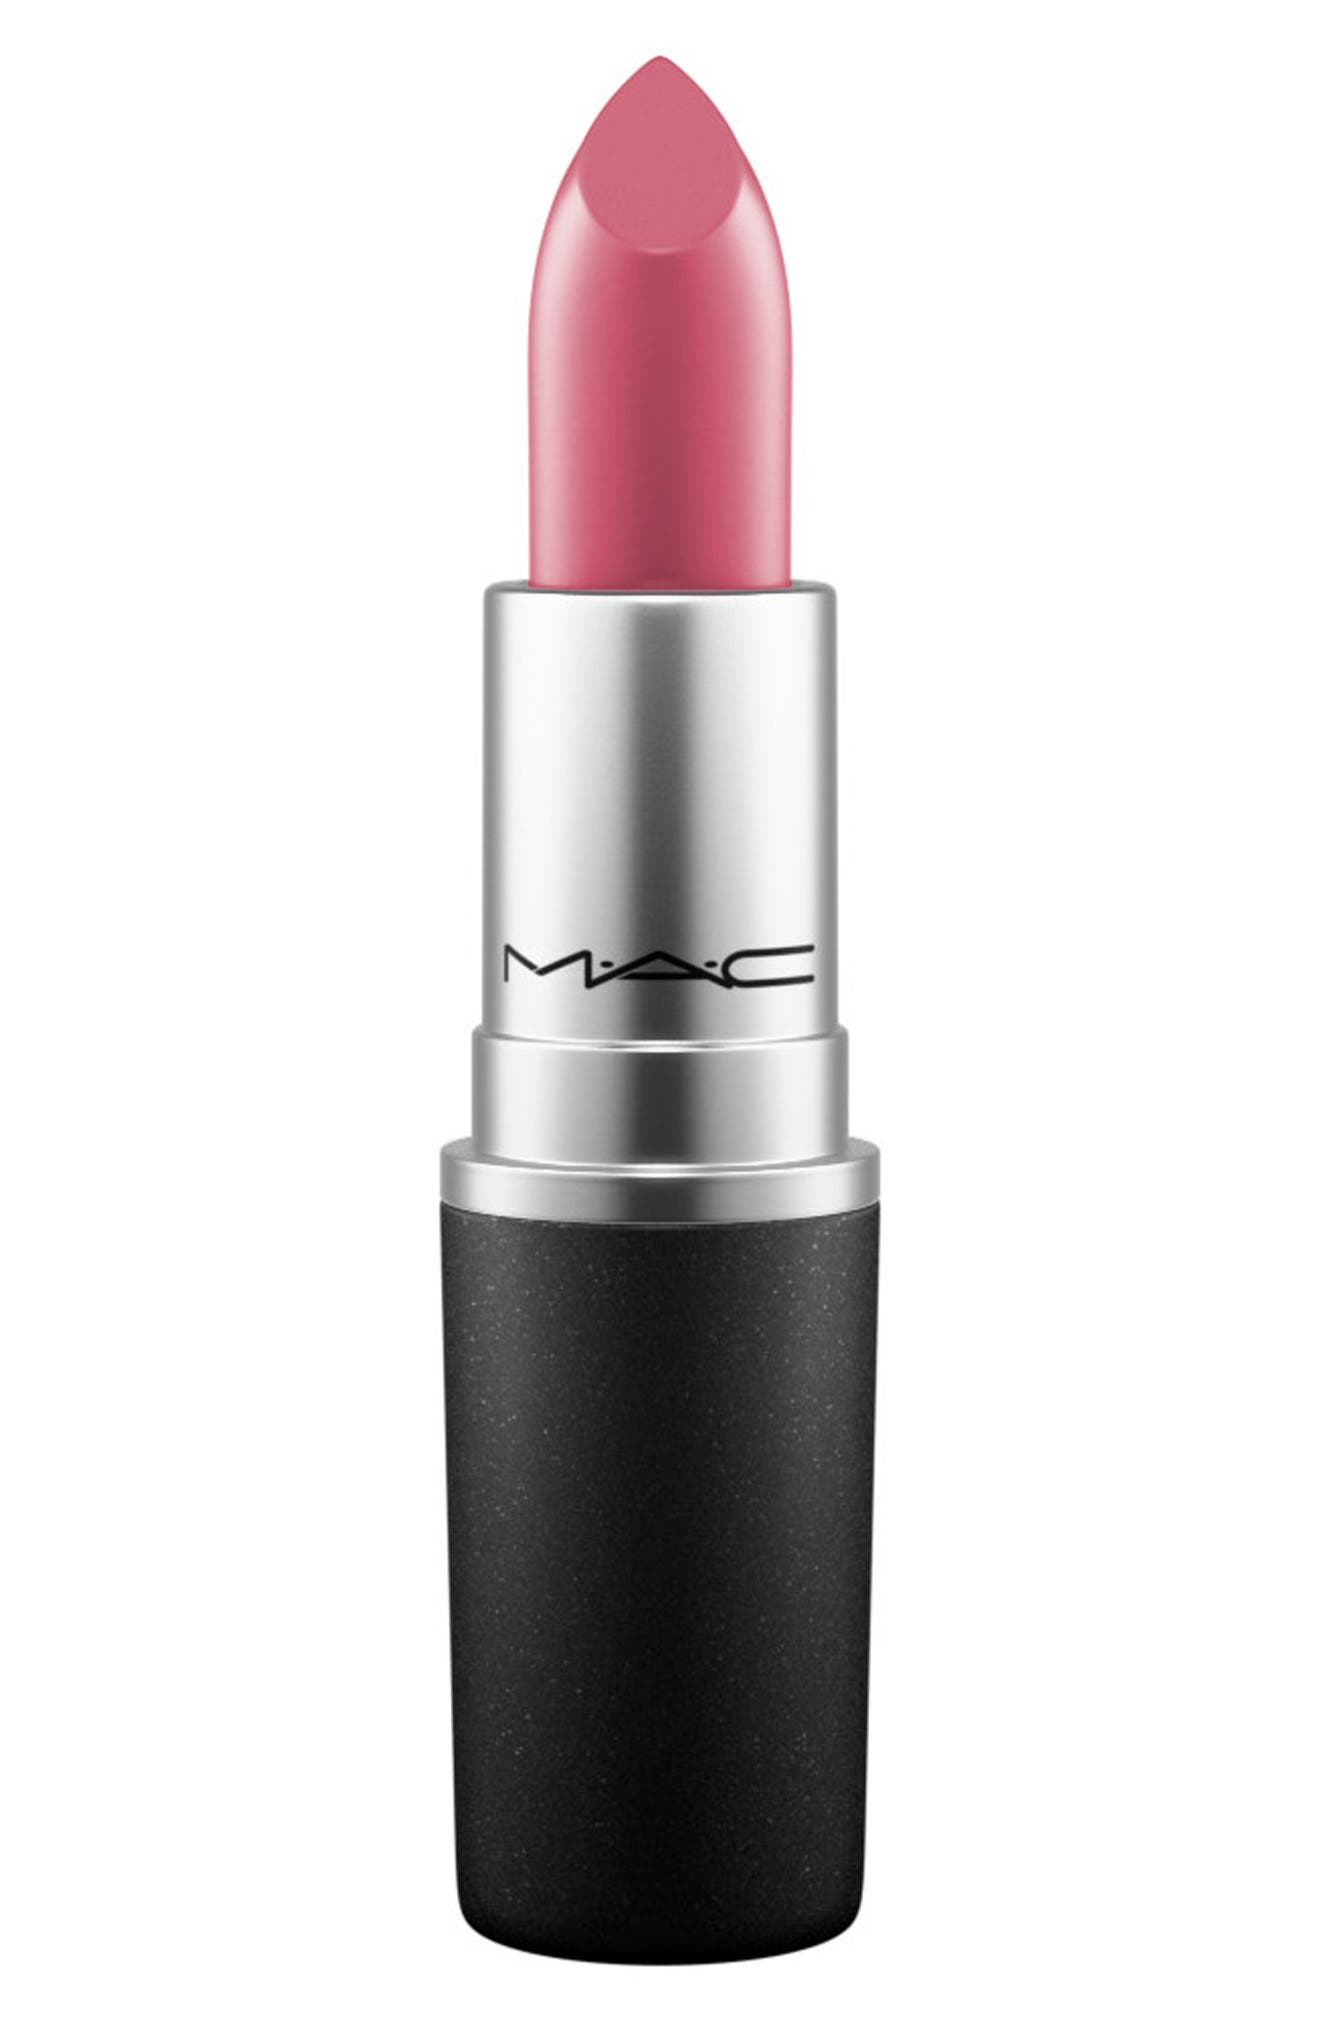 What it is: A creamy lipstick featuring medium-to-full buildable coverage and a satin finish. What it does: With its soft, cushiony texture, this lipstick features the same formula that made the brand famous. How to use: Prep your lips with a primer before applying color. You can apply the color directly to your lips from the bullet or use a lip brush for more precision. Style Name: Mac Satin Lipstick. Style Number: 256393 5. Available in stores.